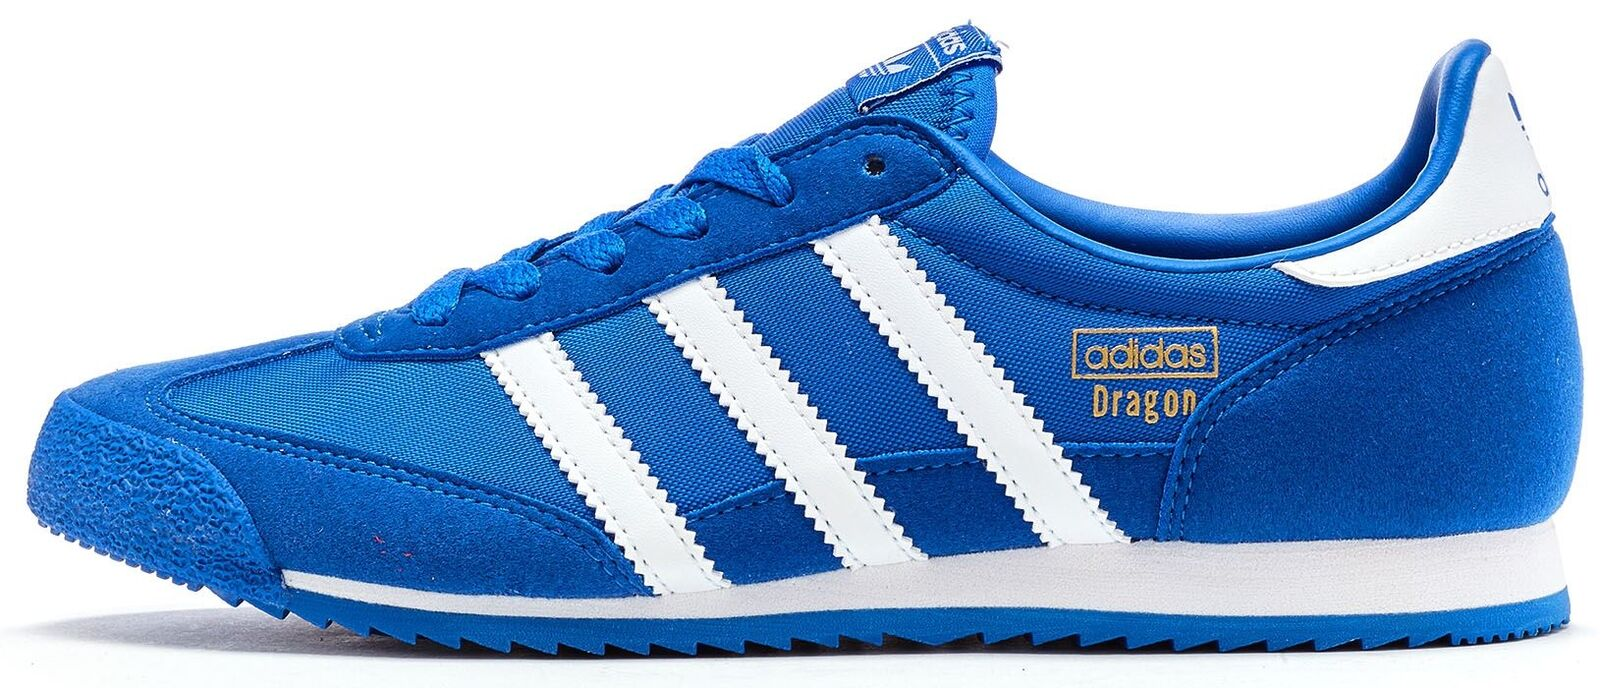 Adidas Originaux Dragon Gs Retro Baskets en Royal Bleu & Blanc BB2486